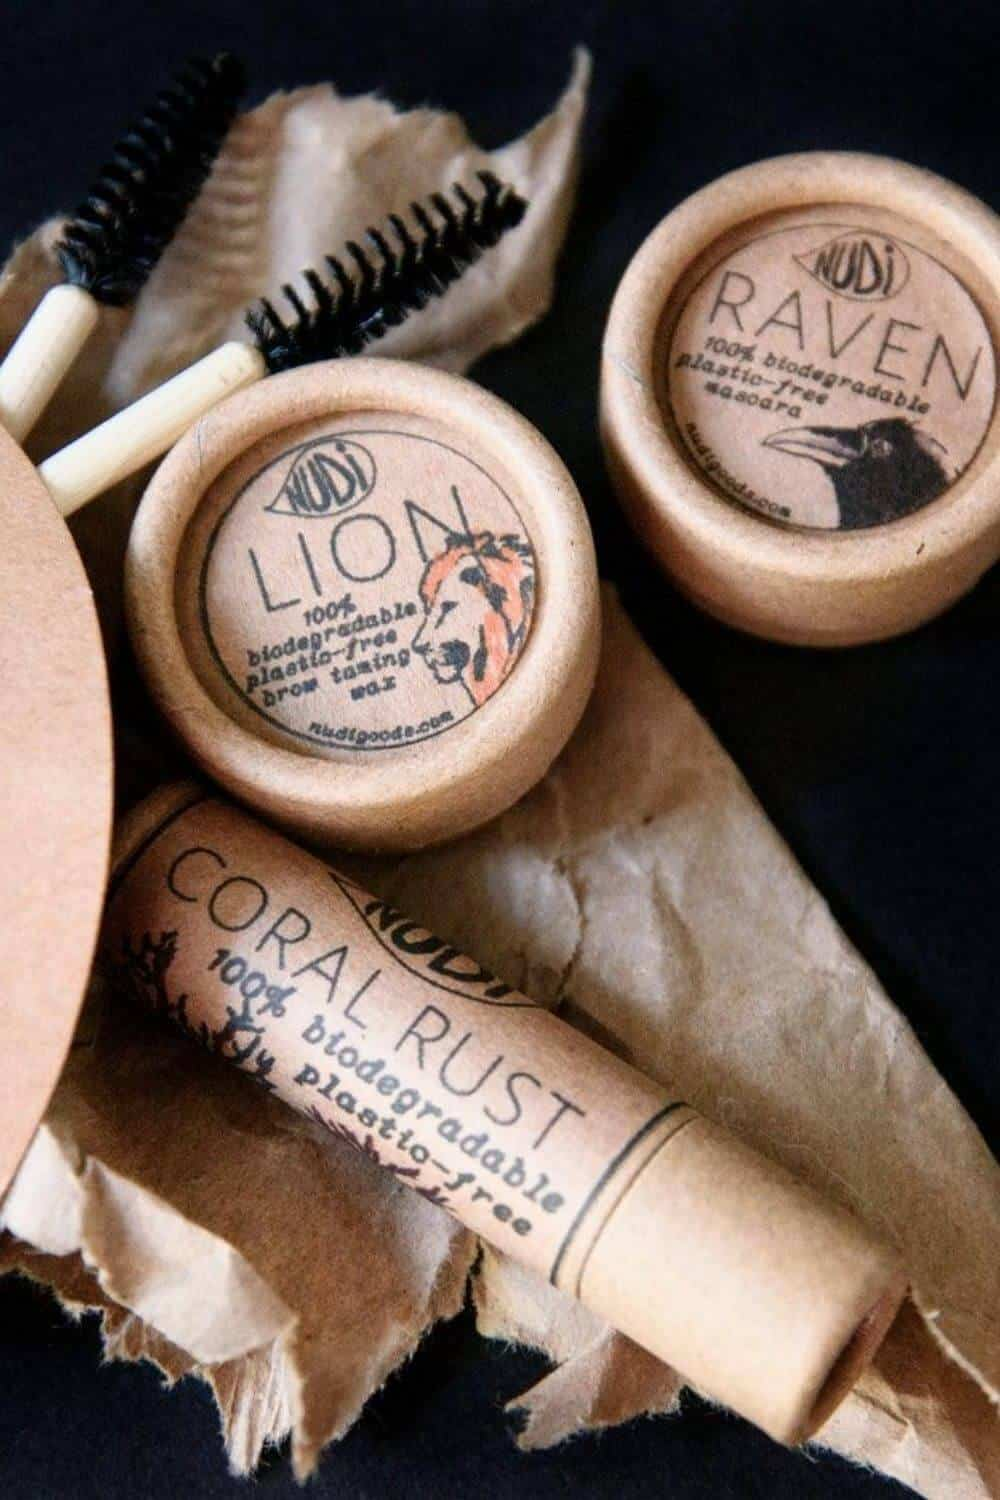 Finding zero waste makeup alternatives is no easy feat, because traditional containers are difficult (at best) to recycle, being often comprised of composite materials and components Image by Nudi Goods #zerowastemakeup